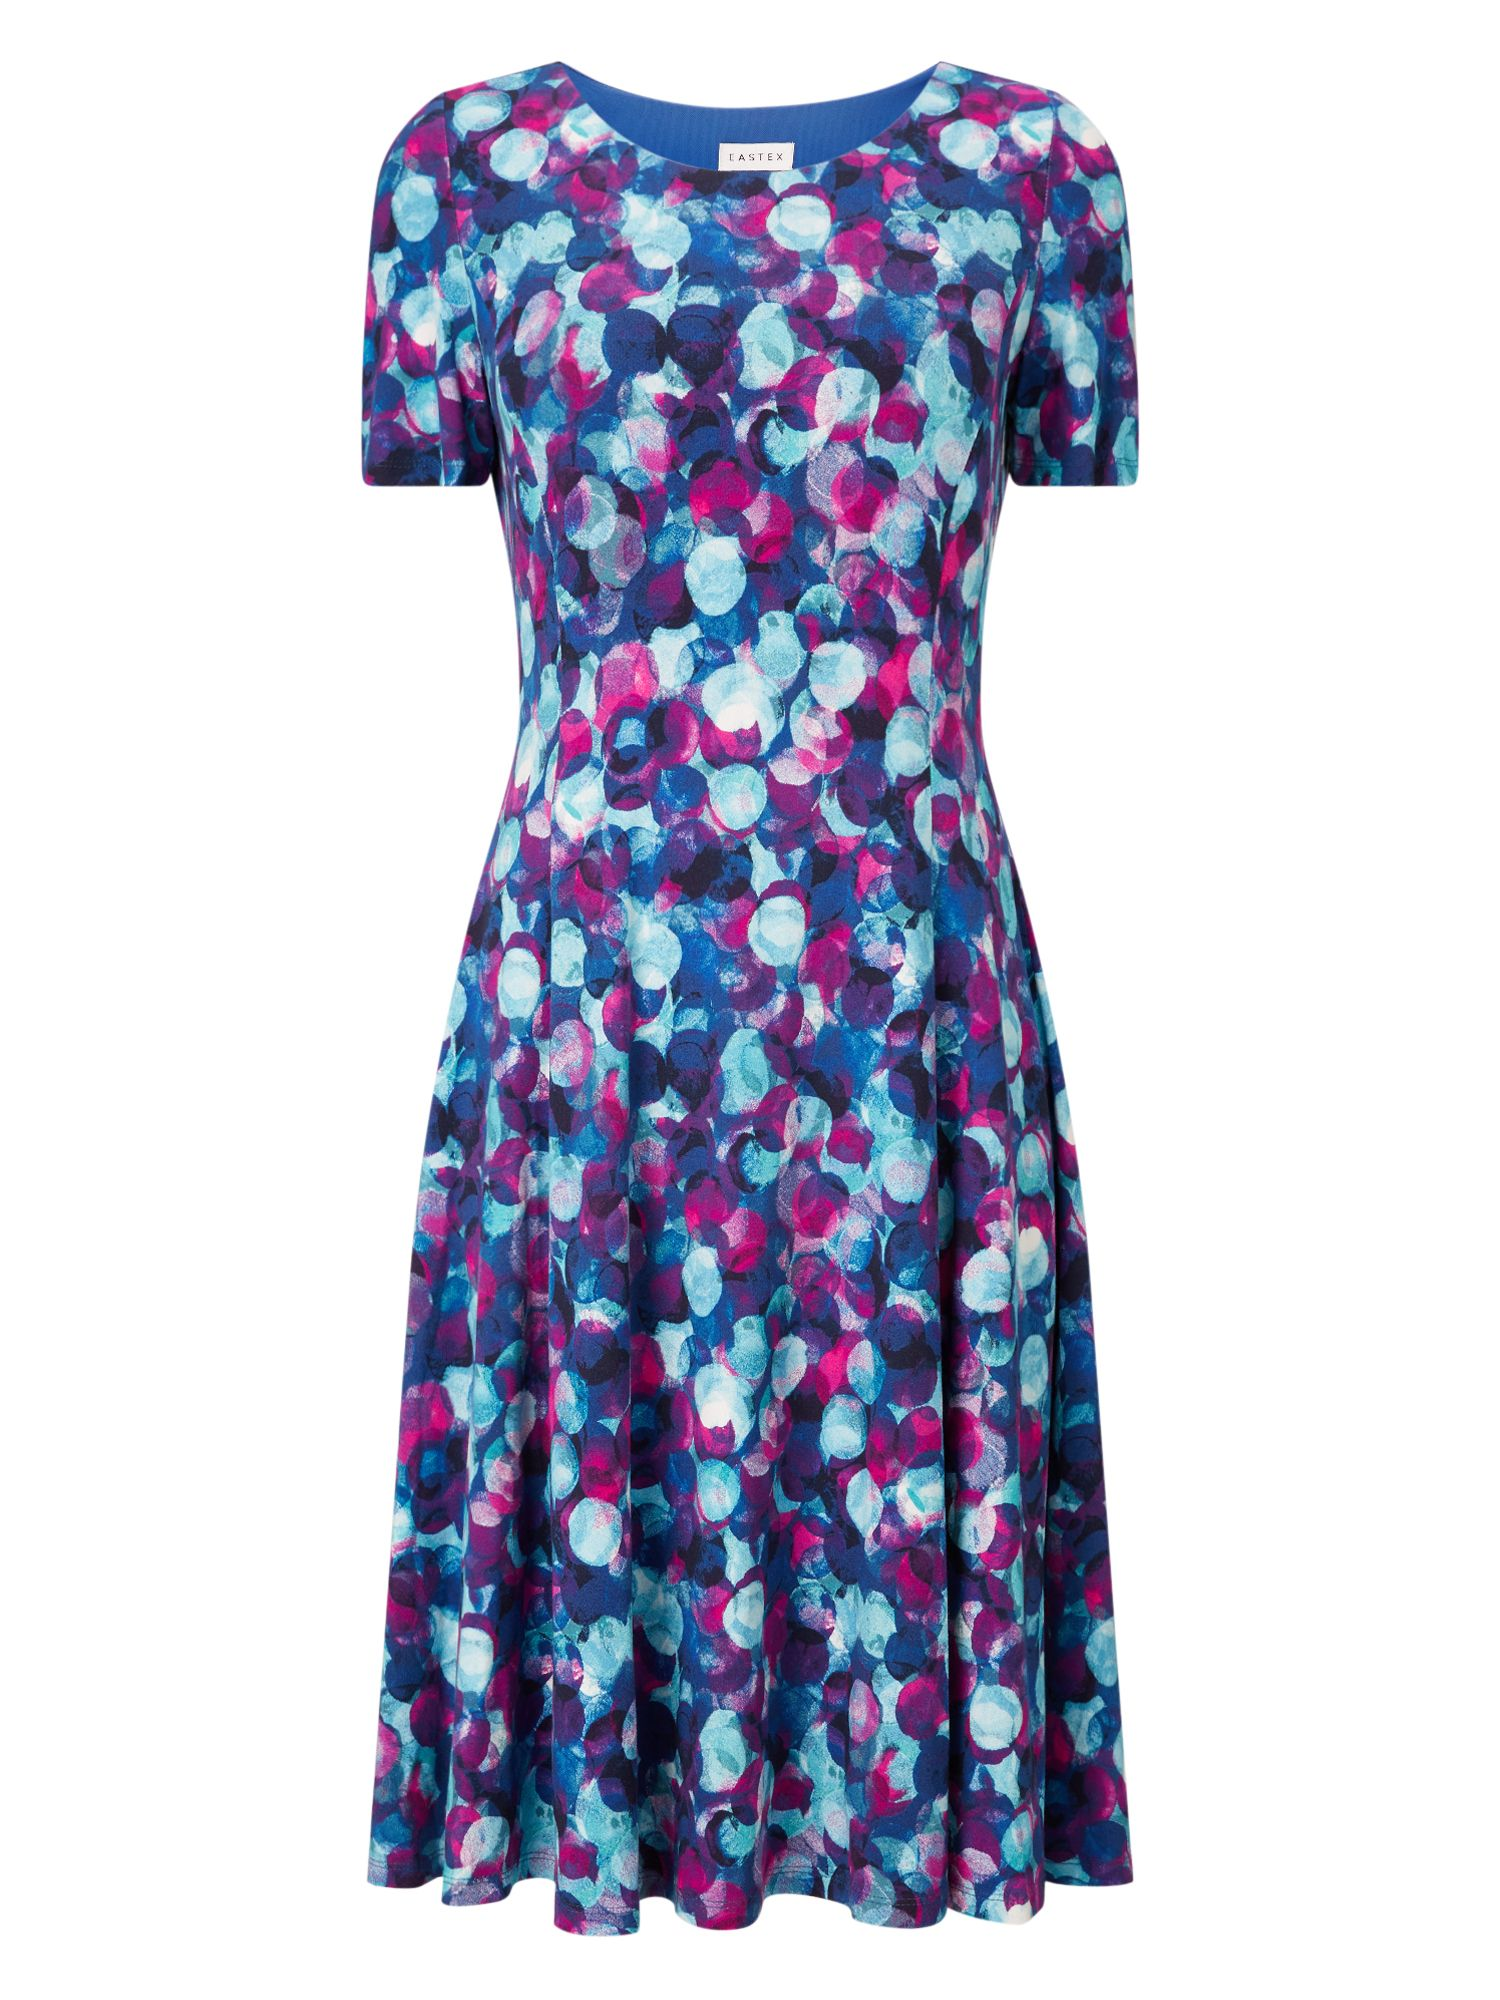 Eastex Harvest Spot Jersey Dress, Multi-Coloured